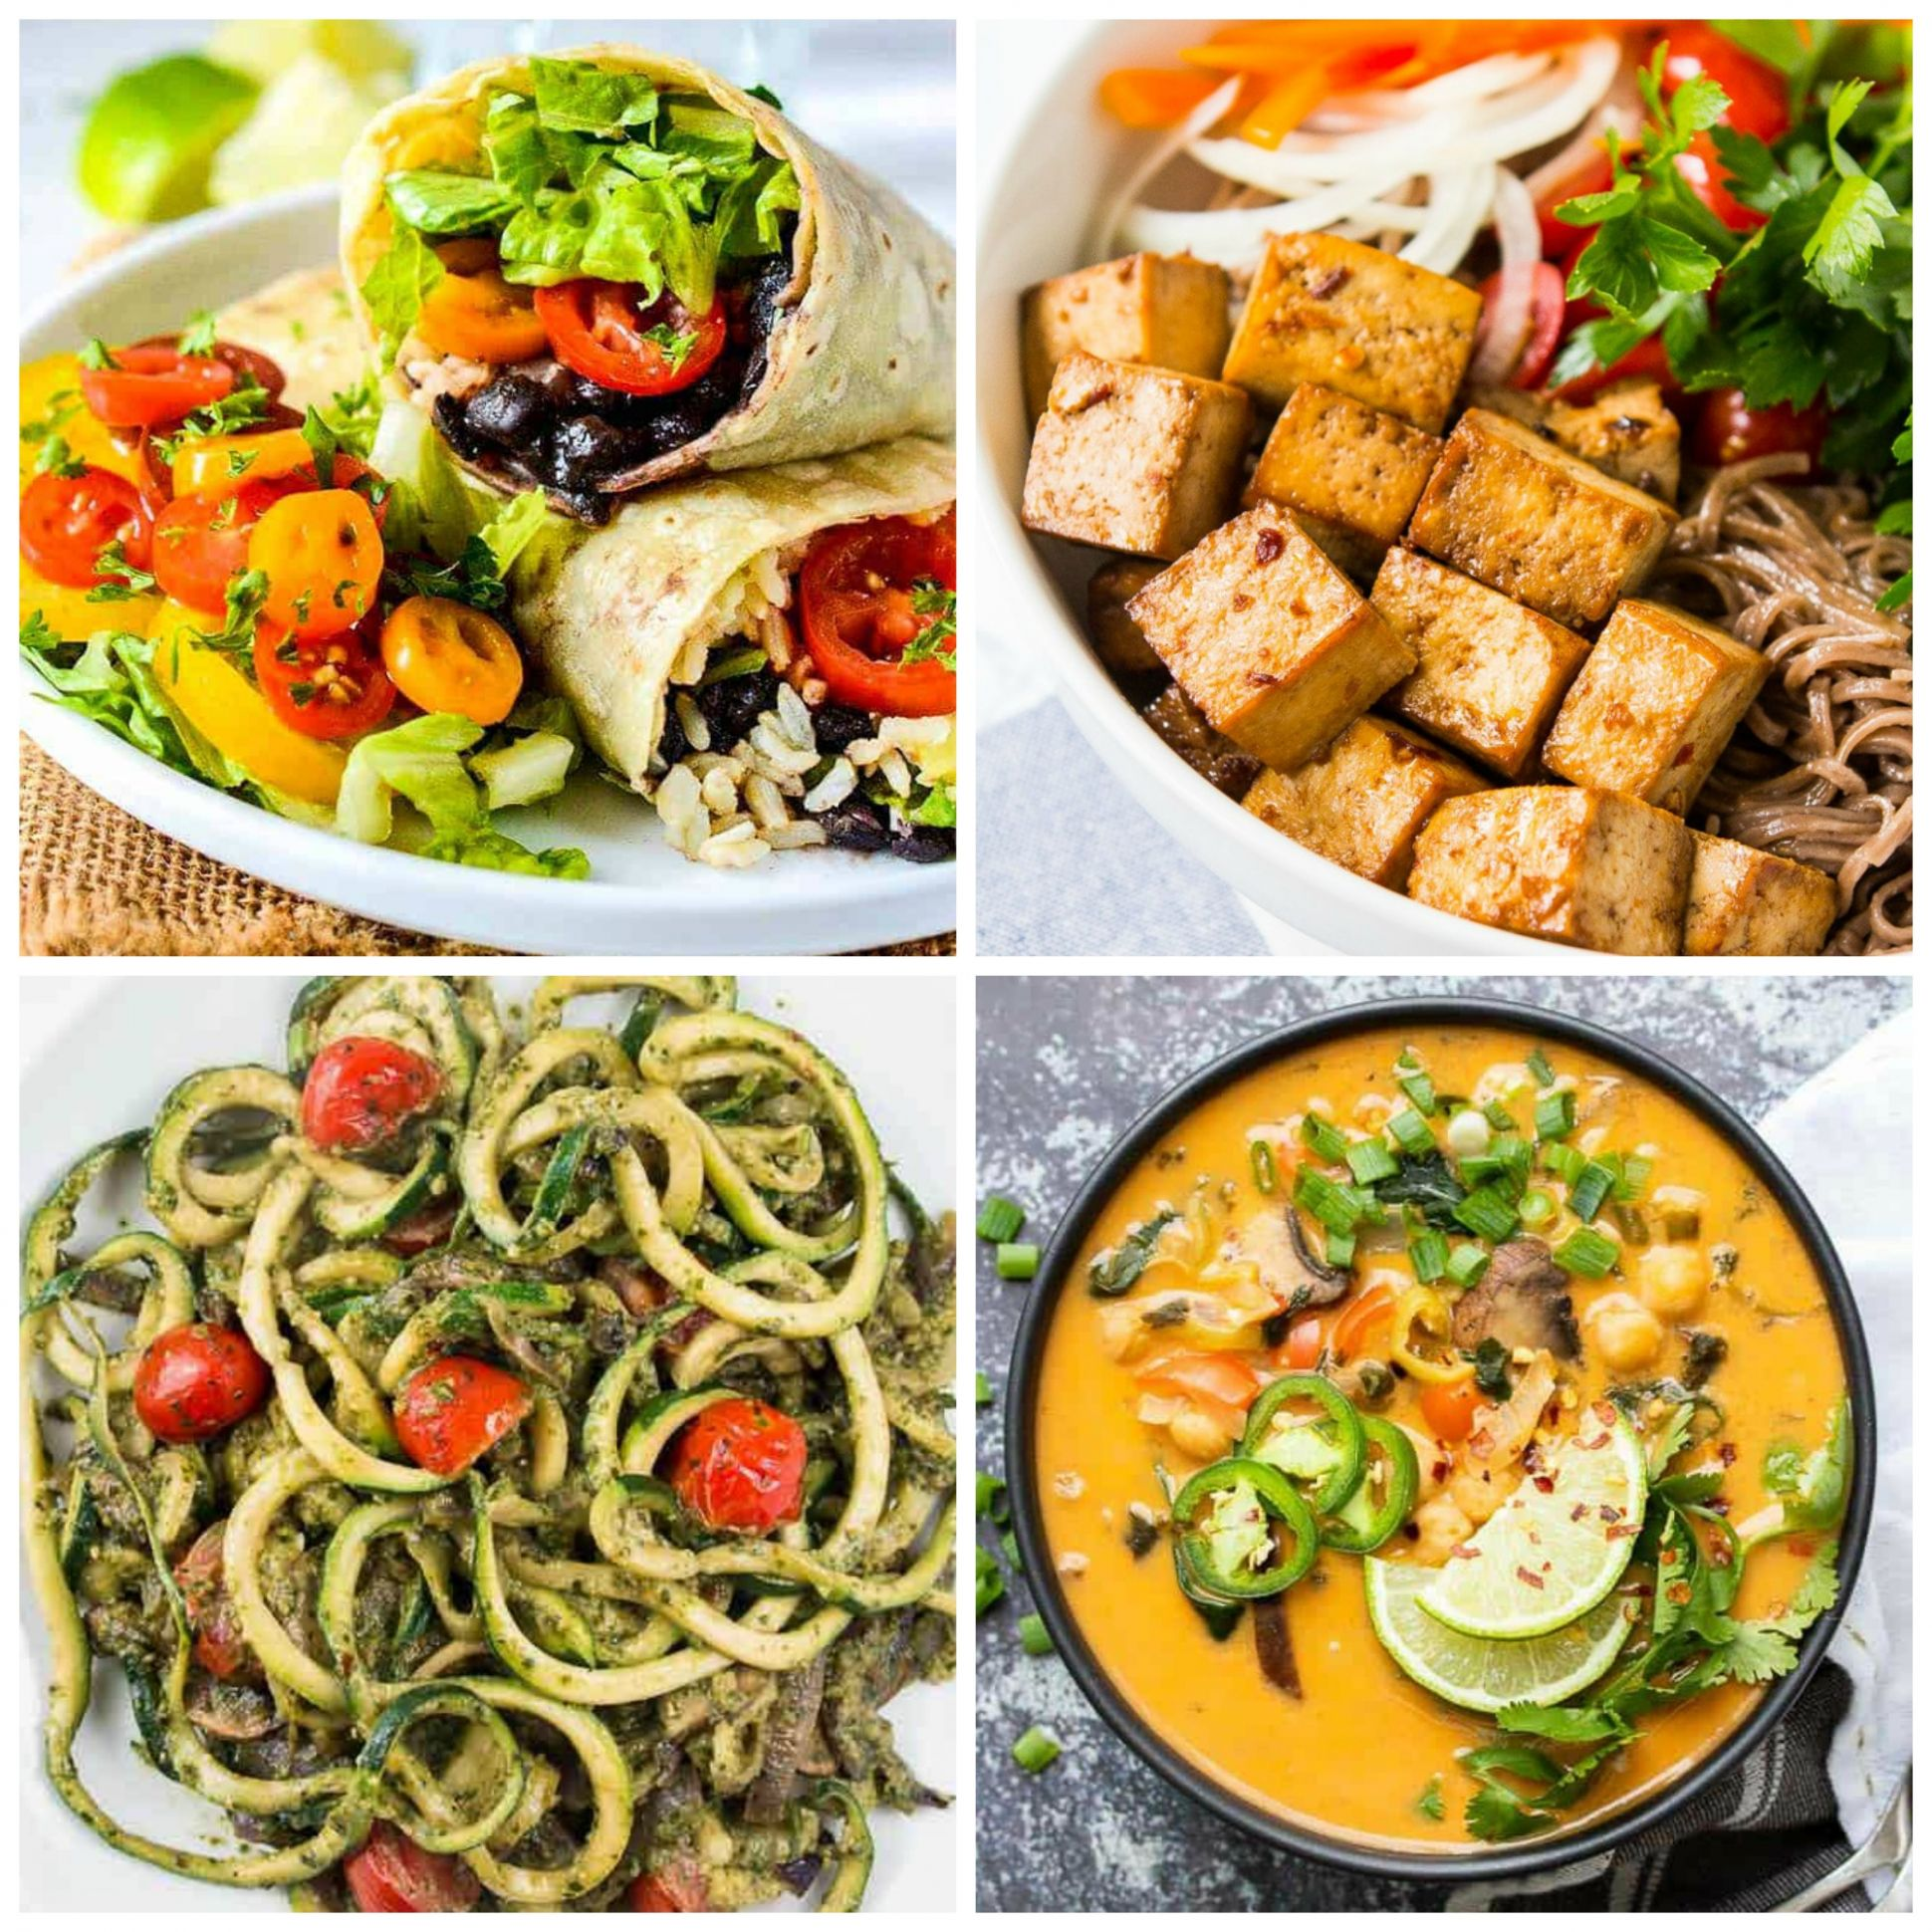 9 AMAZING Vegan Meals for Weight Loss (Gluten-Free & Low-Calorie) - Recipes For Weight Loss Lunch